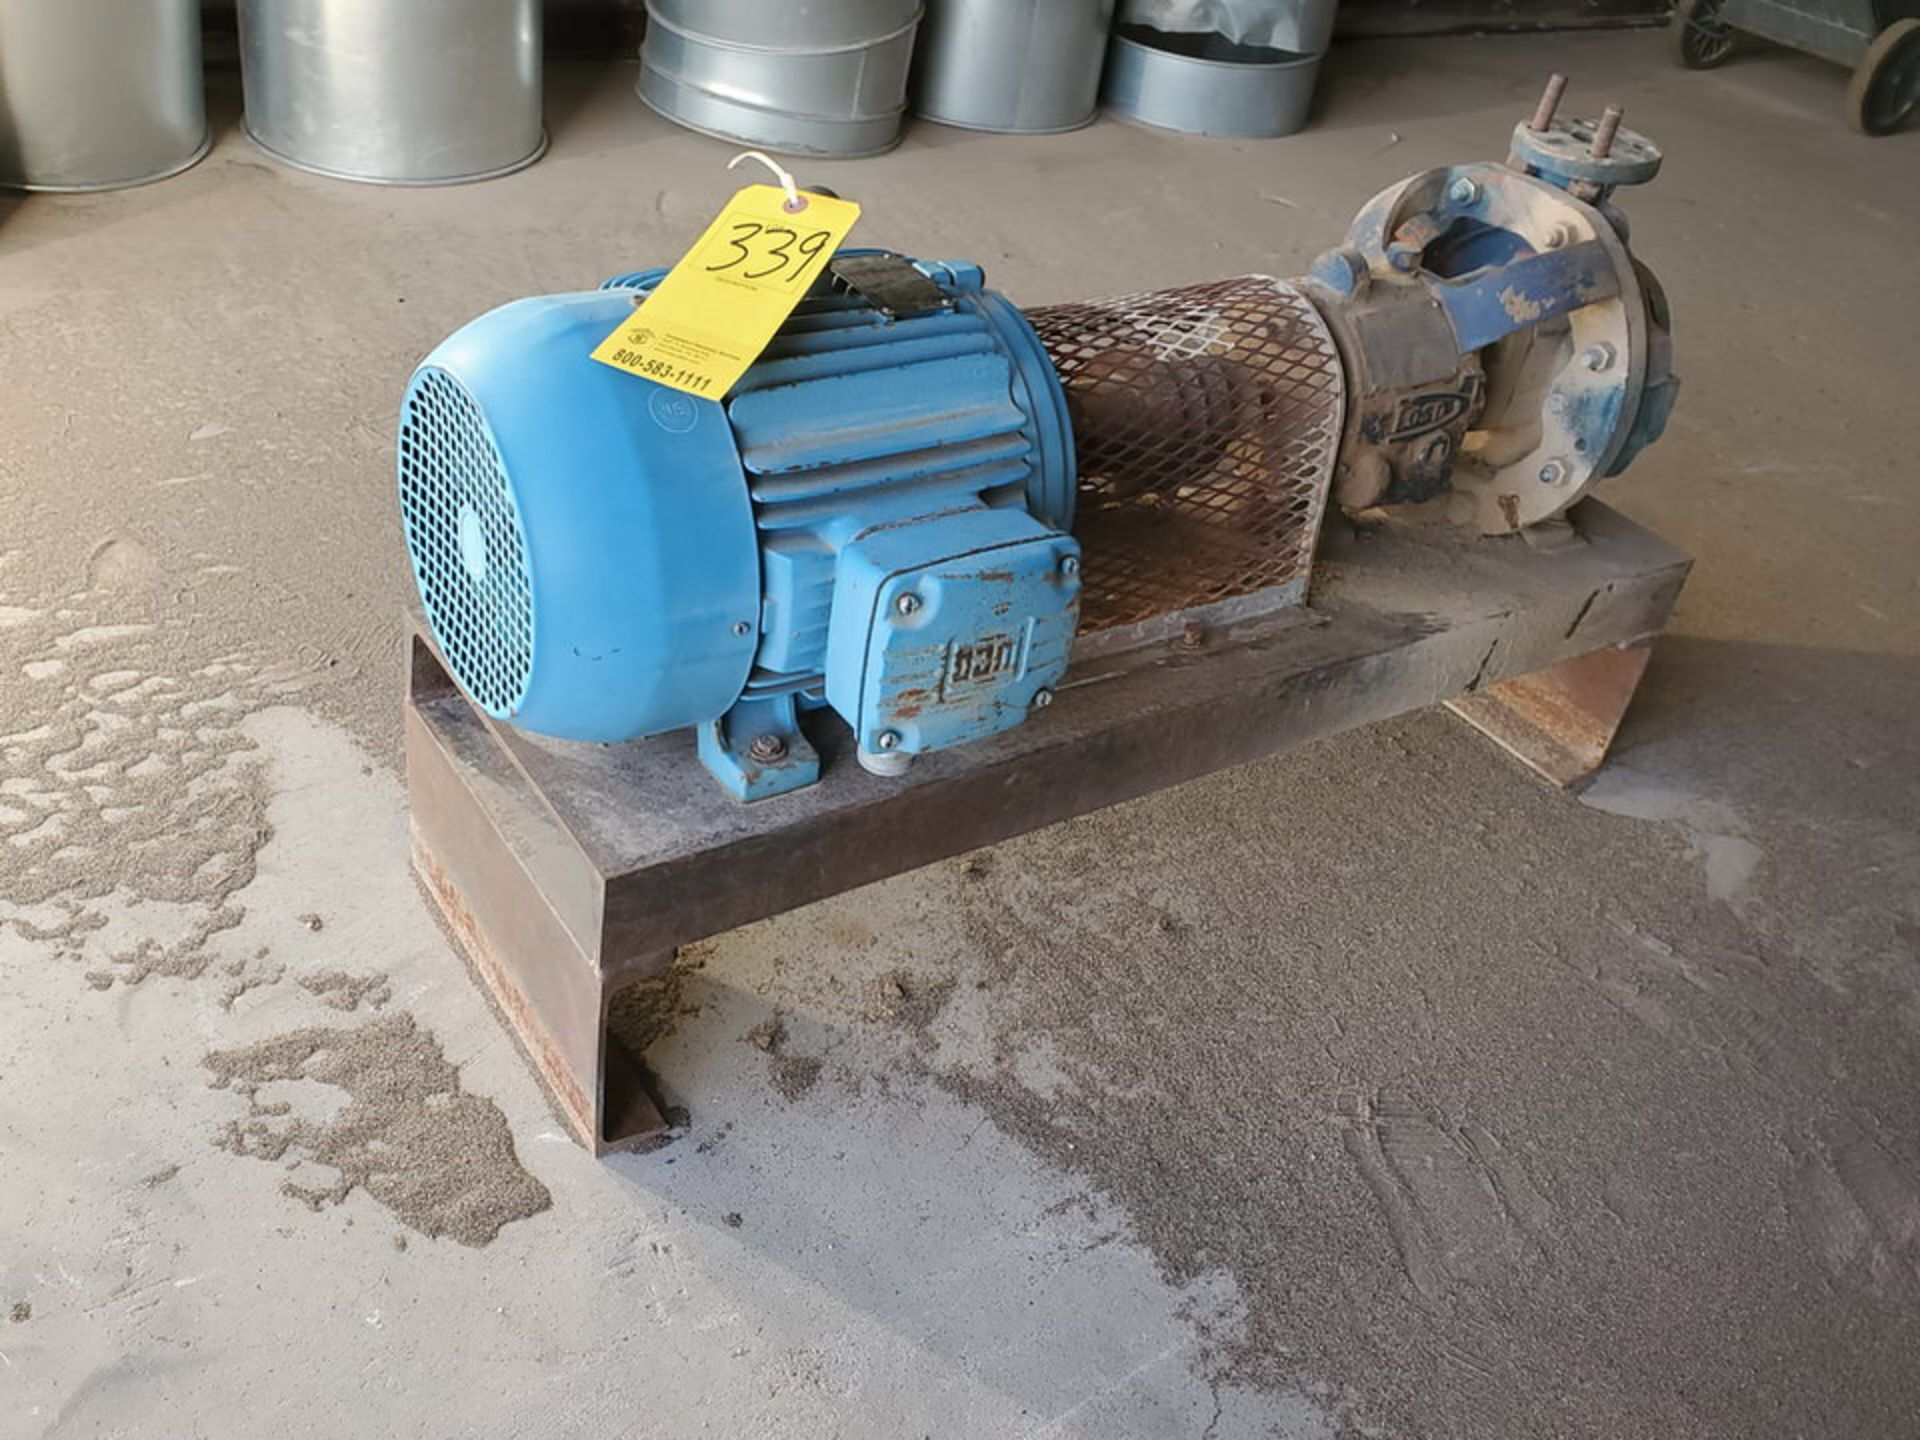 American-Marsh Pumps 1L1x1.5-6RV OSD Centrifugal Pump W/ 7.5HP Weg Motor - Image 6 of 9